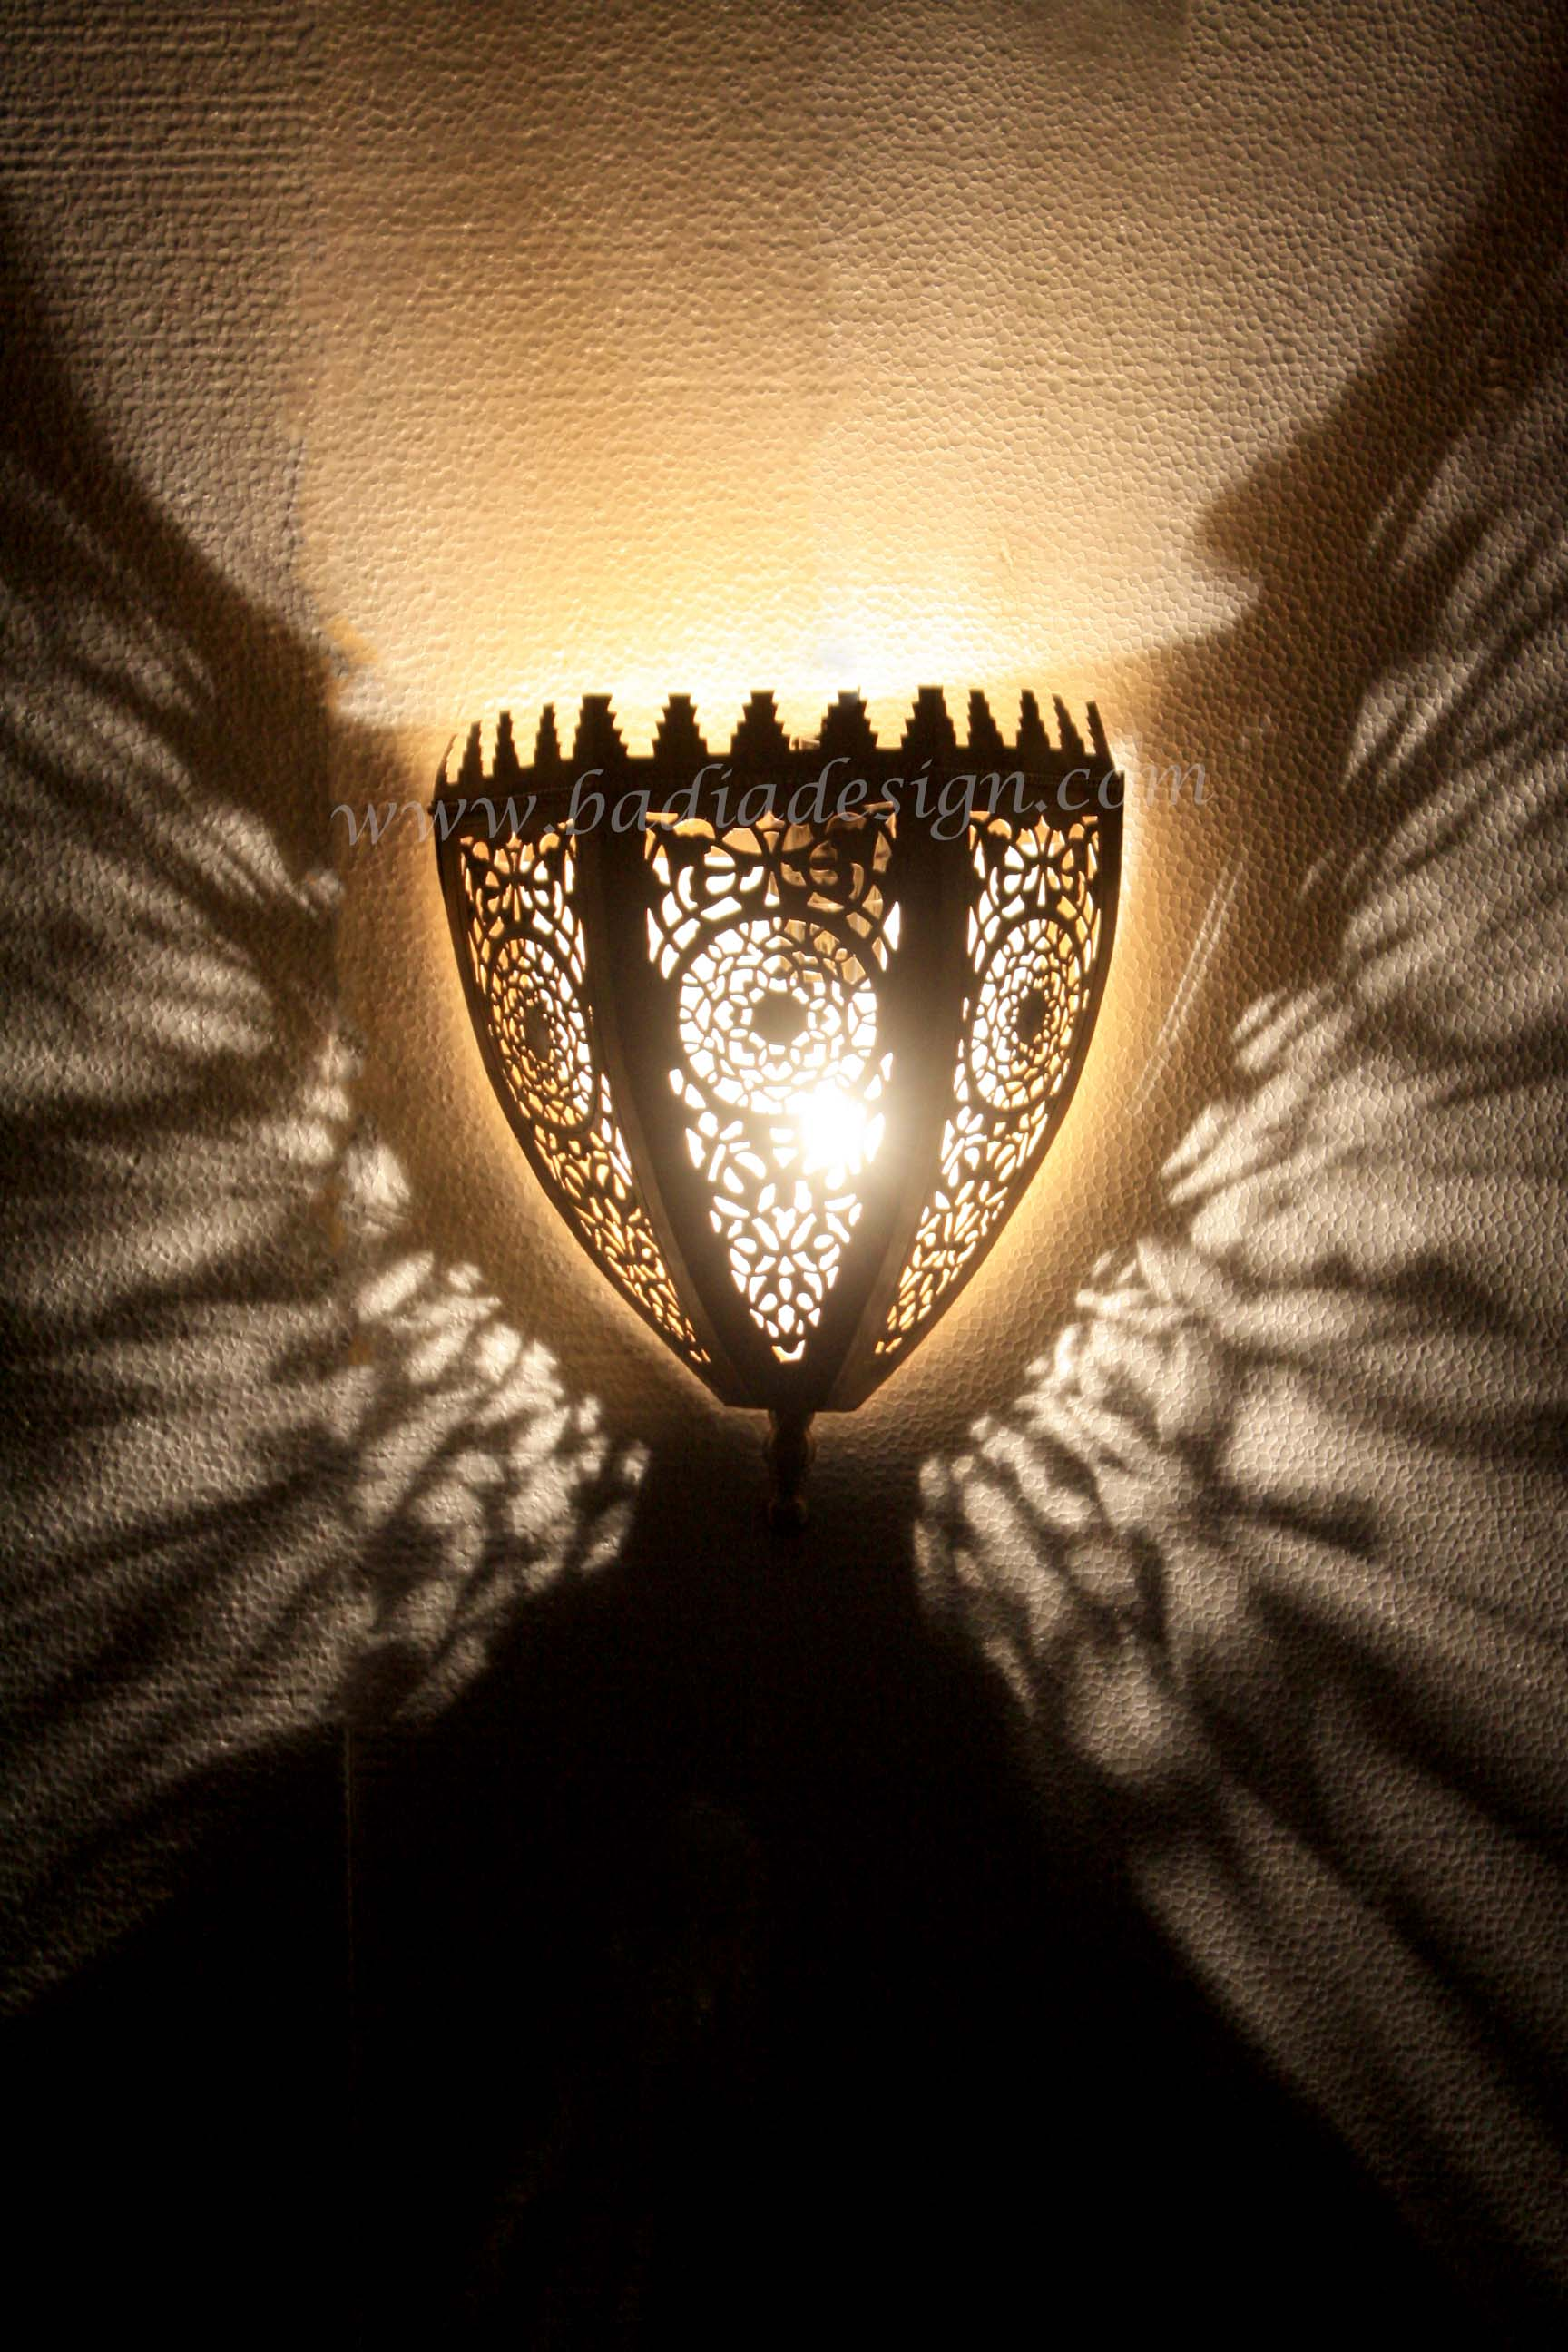 moroccan-brass-wall-sconce-wl189-1.jpg